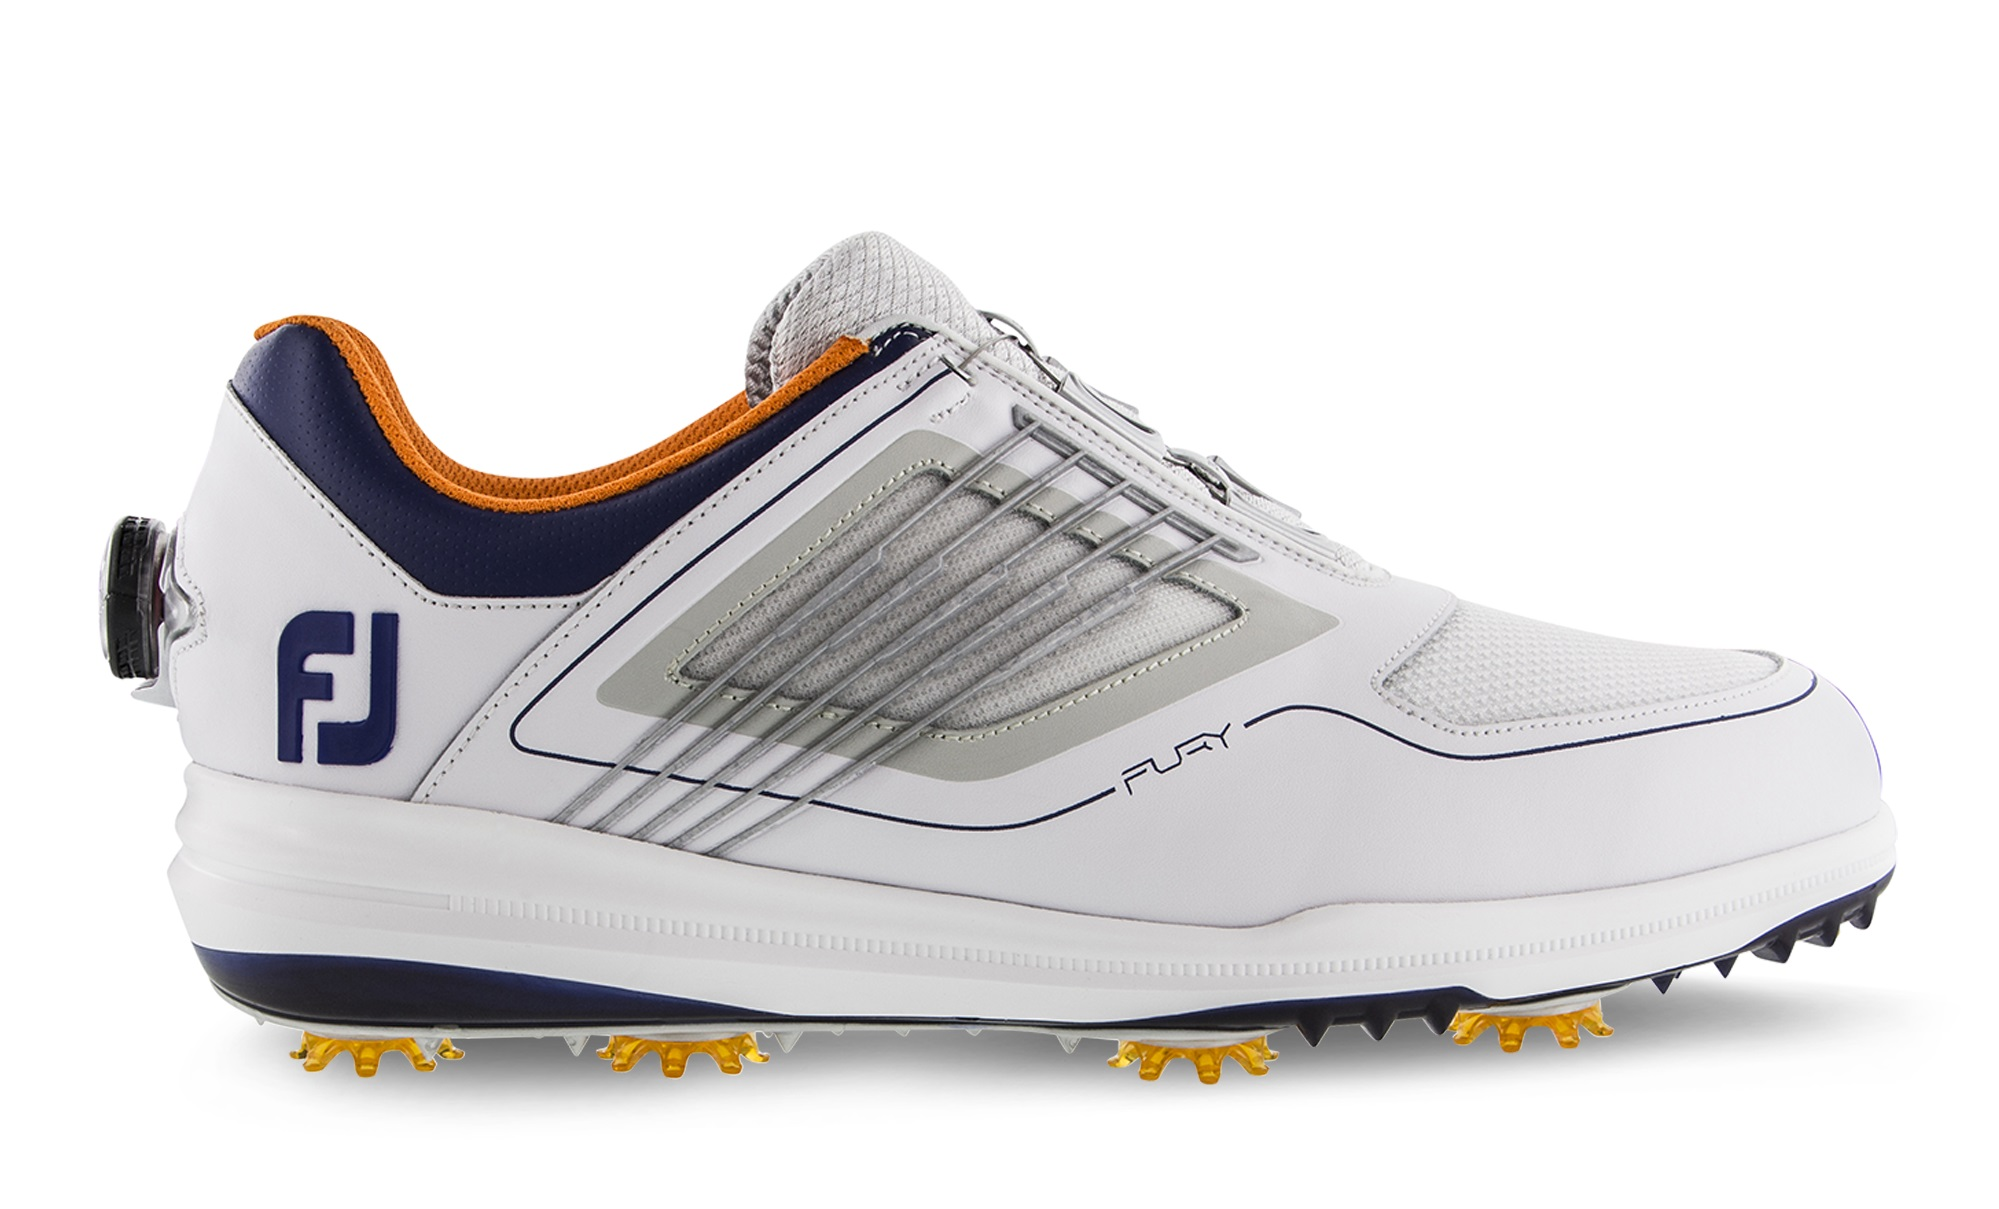 promo code ef4ae 3b806 FootJoy Fury BOA Shoes  RockBottomGolf.com